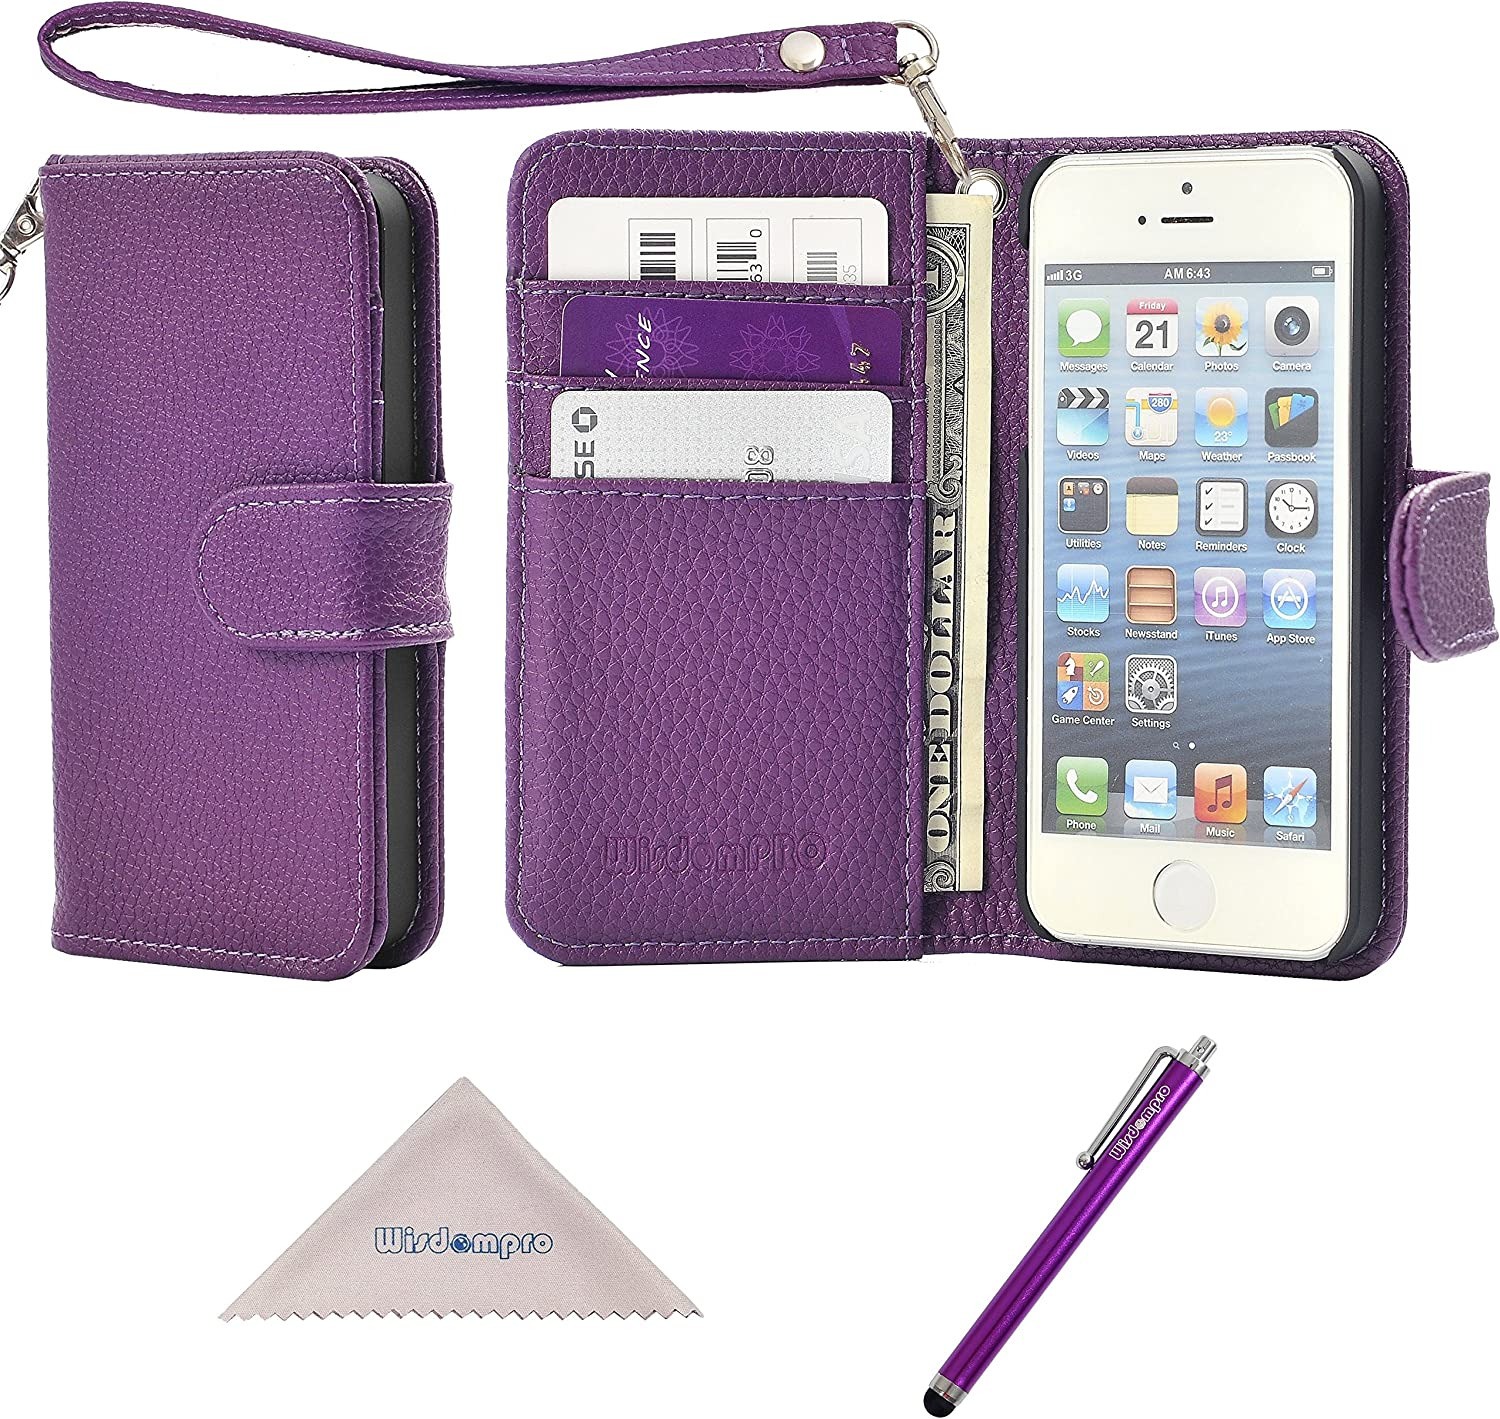 iPhone SE 2016 Case, iPhone 5 Case, Wisdompro Premium PU Leather 2-in-1 Protective Folio Flip Wallet Case with Credit Card Holder Slots and Wrist Lanyard for iPhone 5/5s/SE 1st Generation -Purple